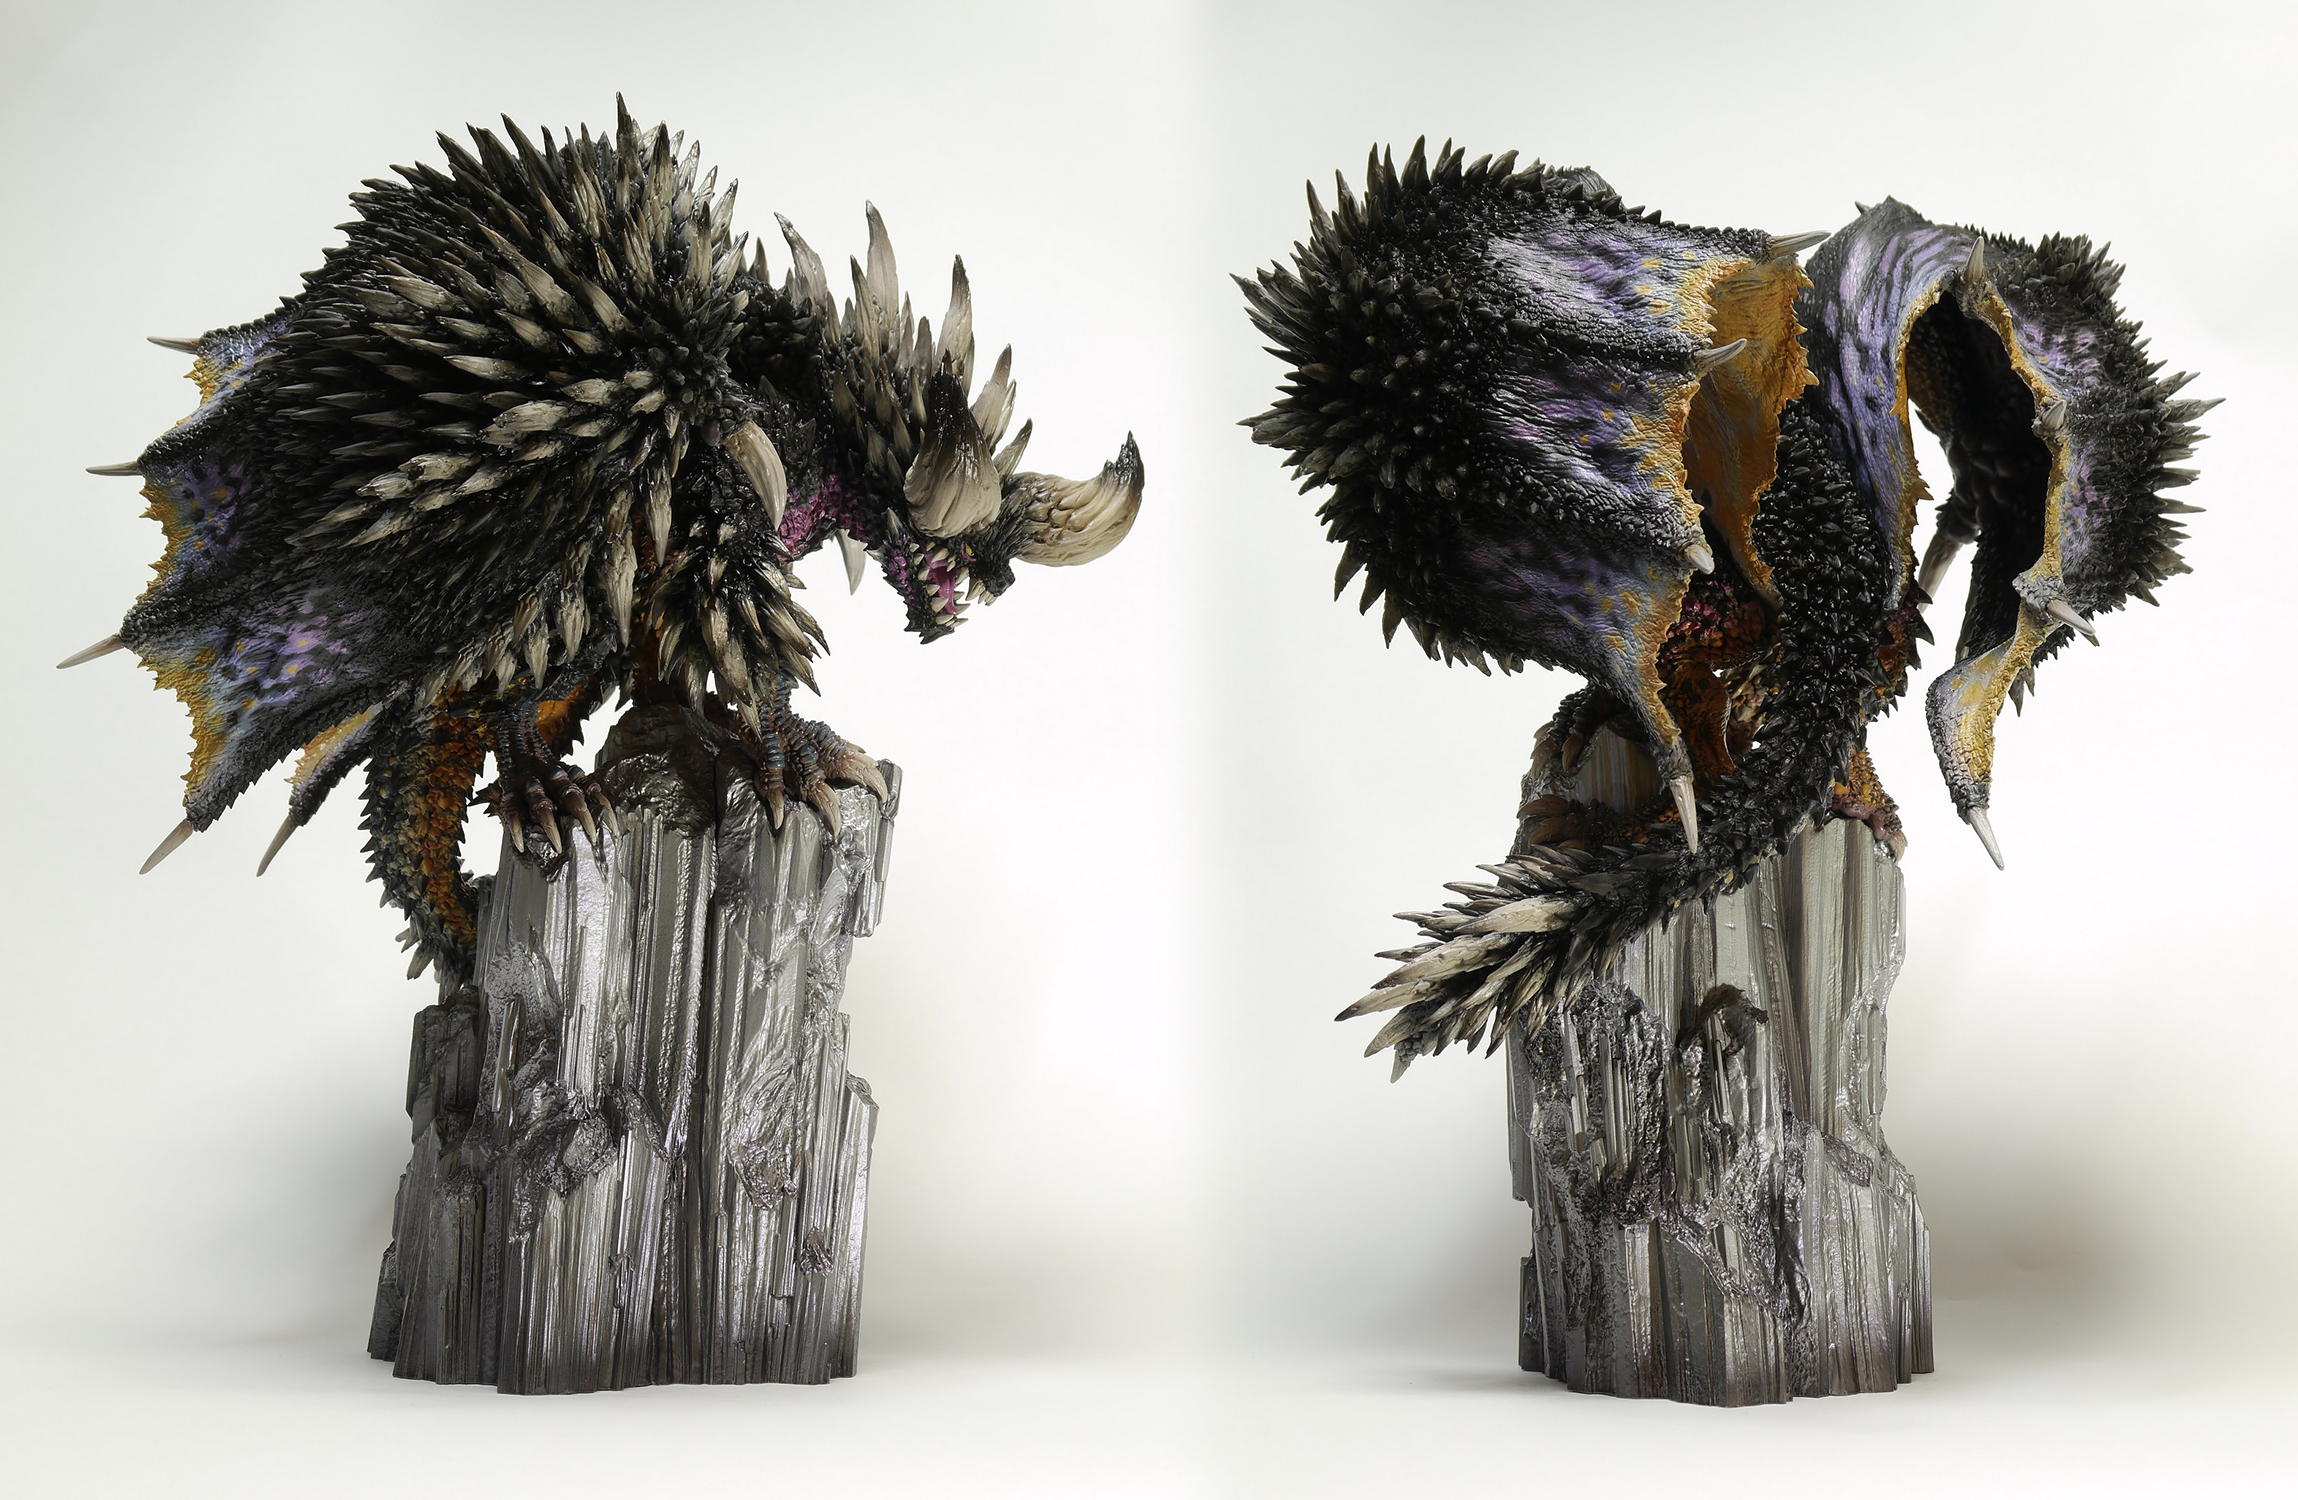 MONSTER HUNTER CREATORS MODEL NERGIGANTE